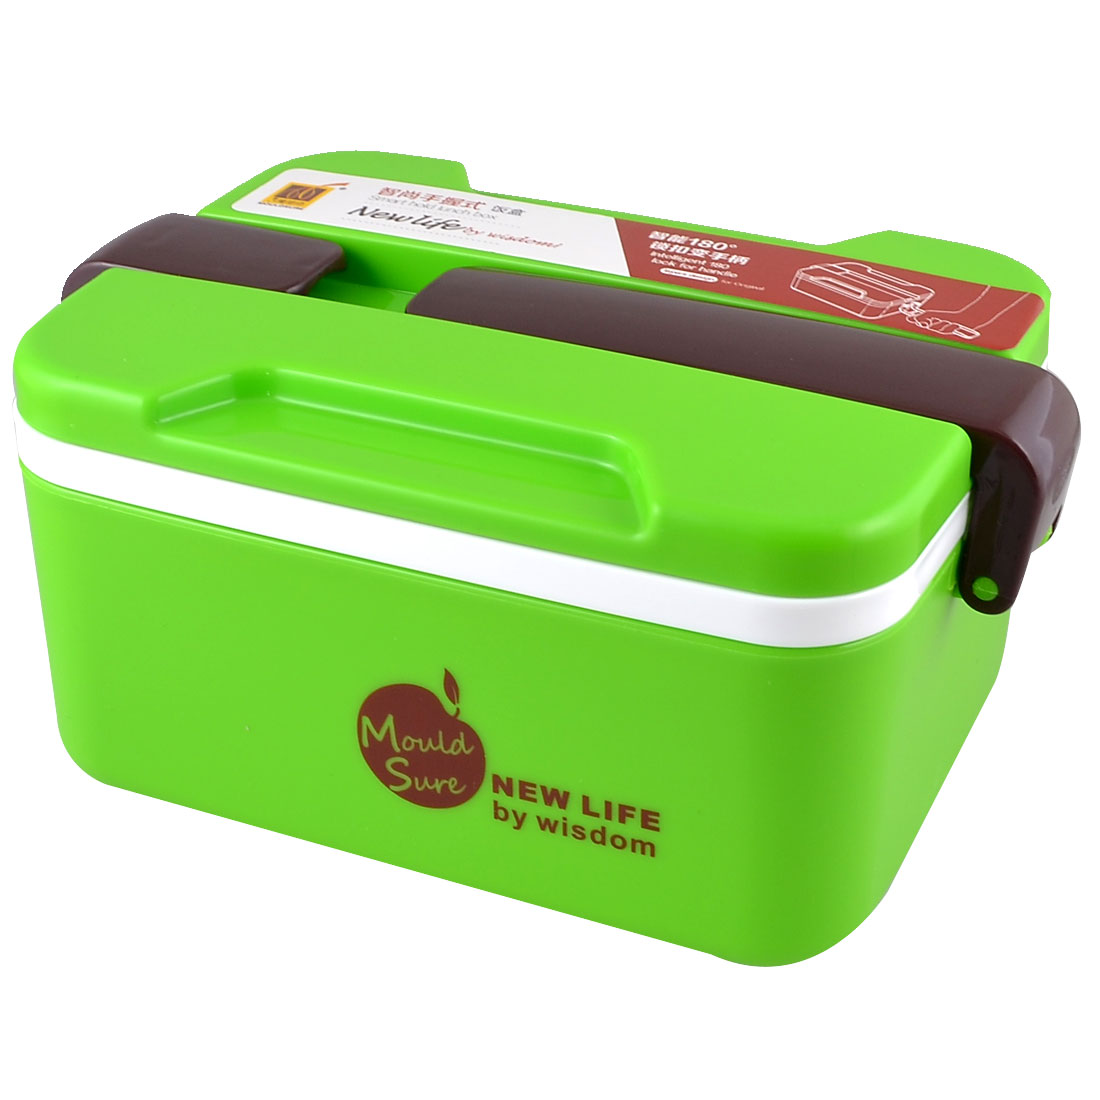 Green Plastic Rectangle Shaped Food Holder Picnic Lunch Box w White Spoon